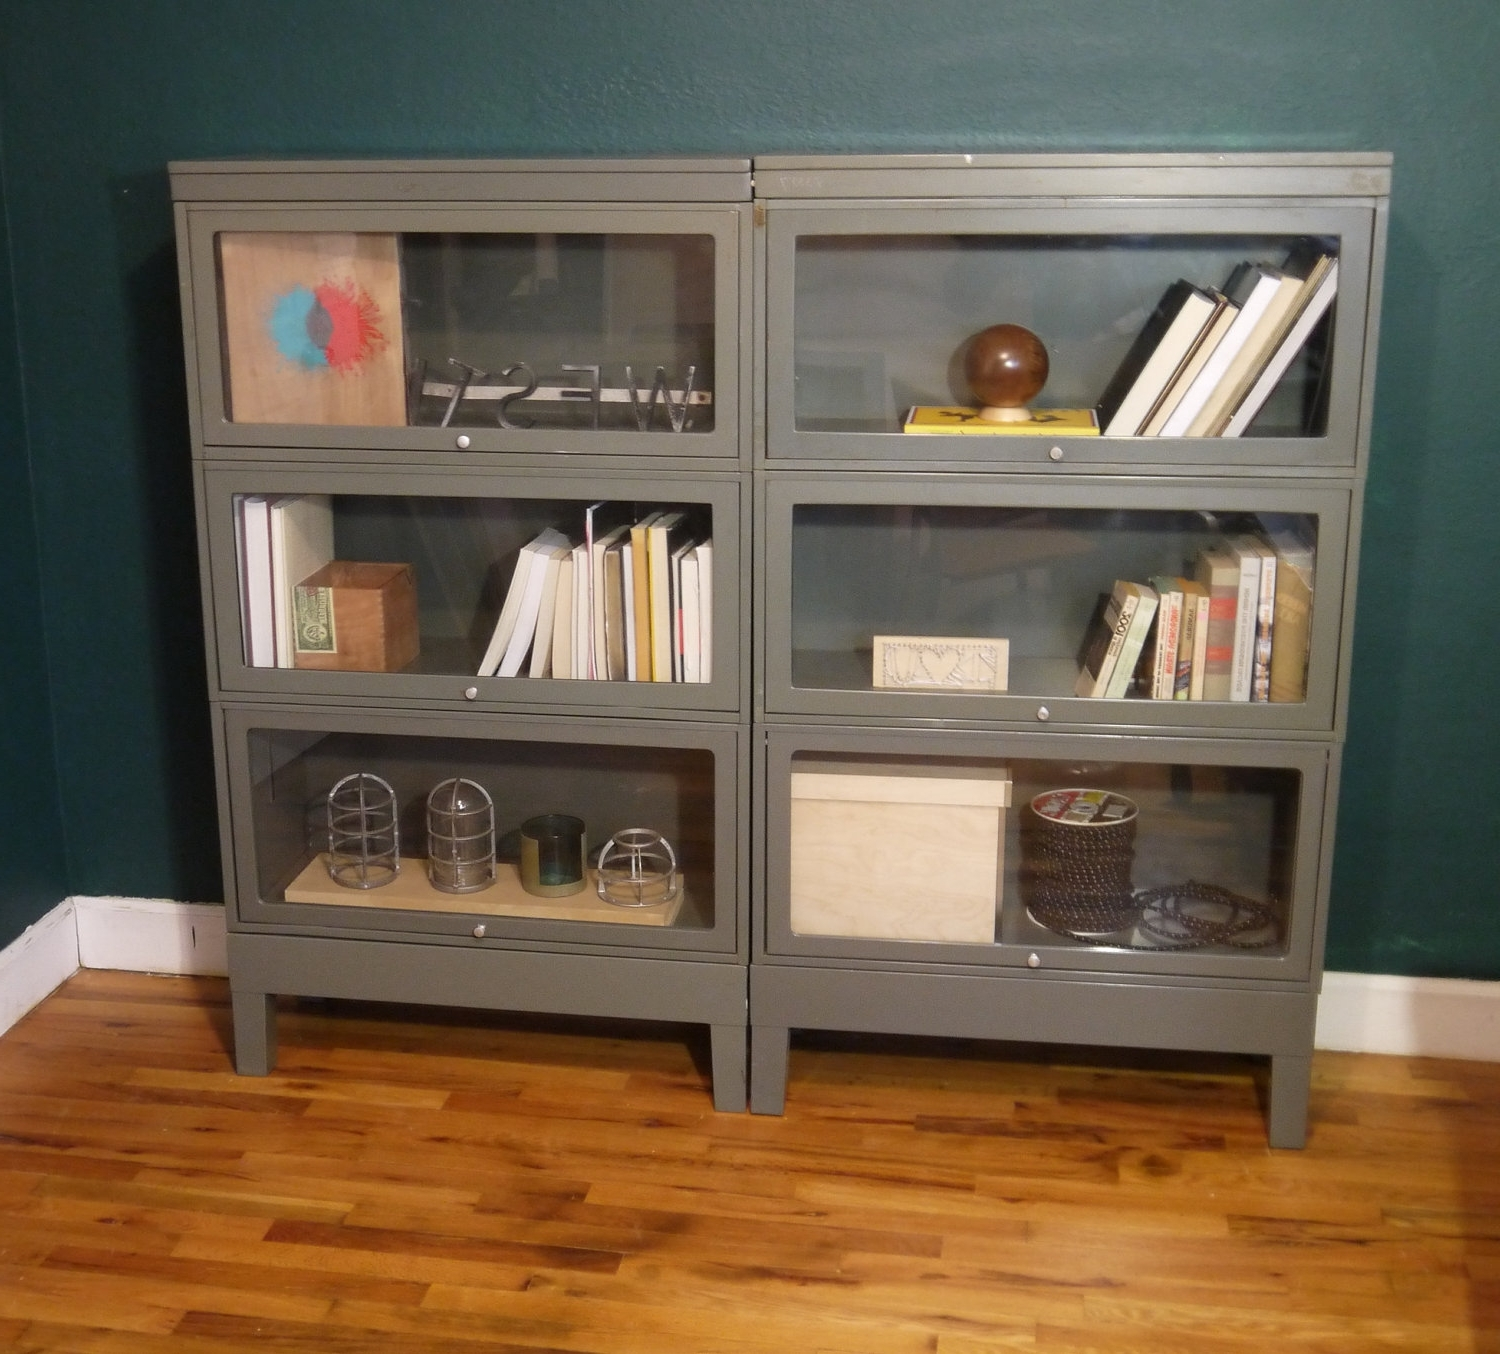 Fashionable Furniture Home: 37 Unbelievable Threshold Carson Bookcase Images Intended For Threshold Bookcases (View 9 of 15)